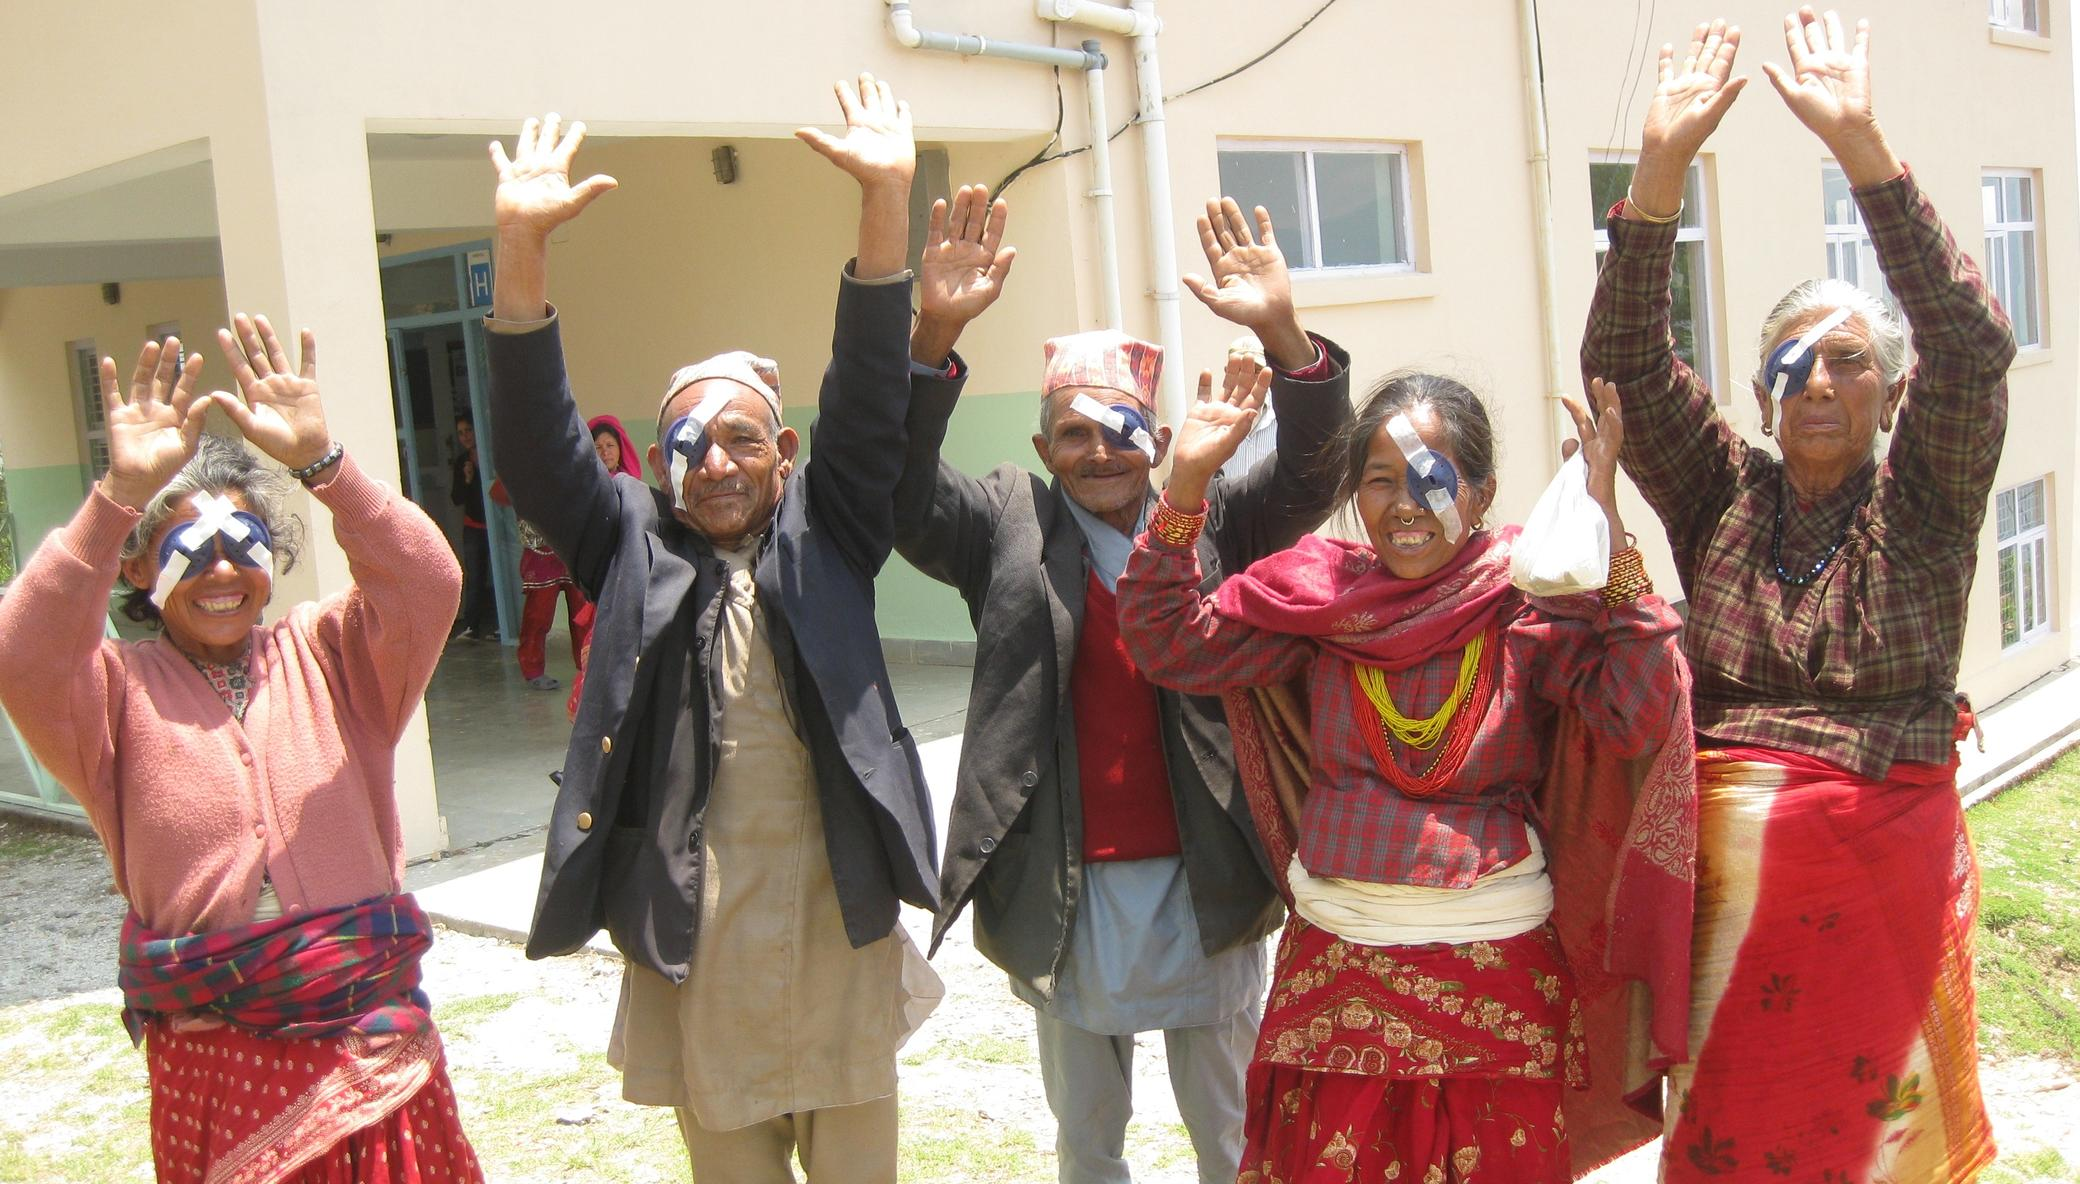 Himalayan Cataract Project: Remote Eye Camps